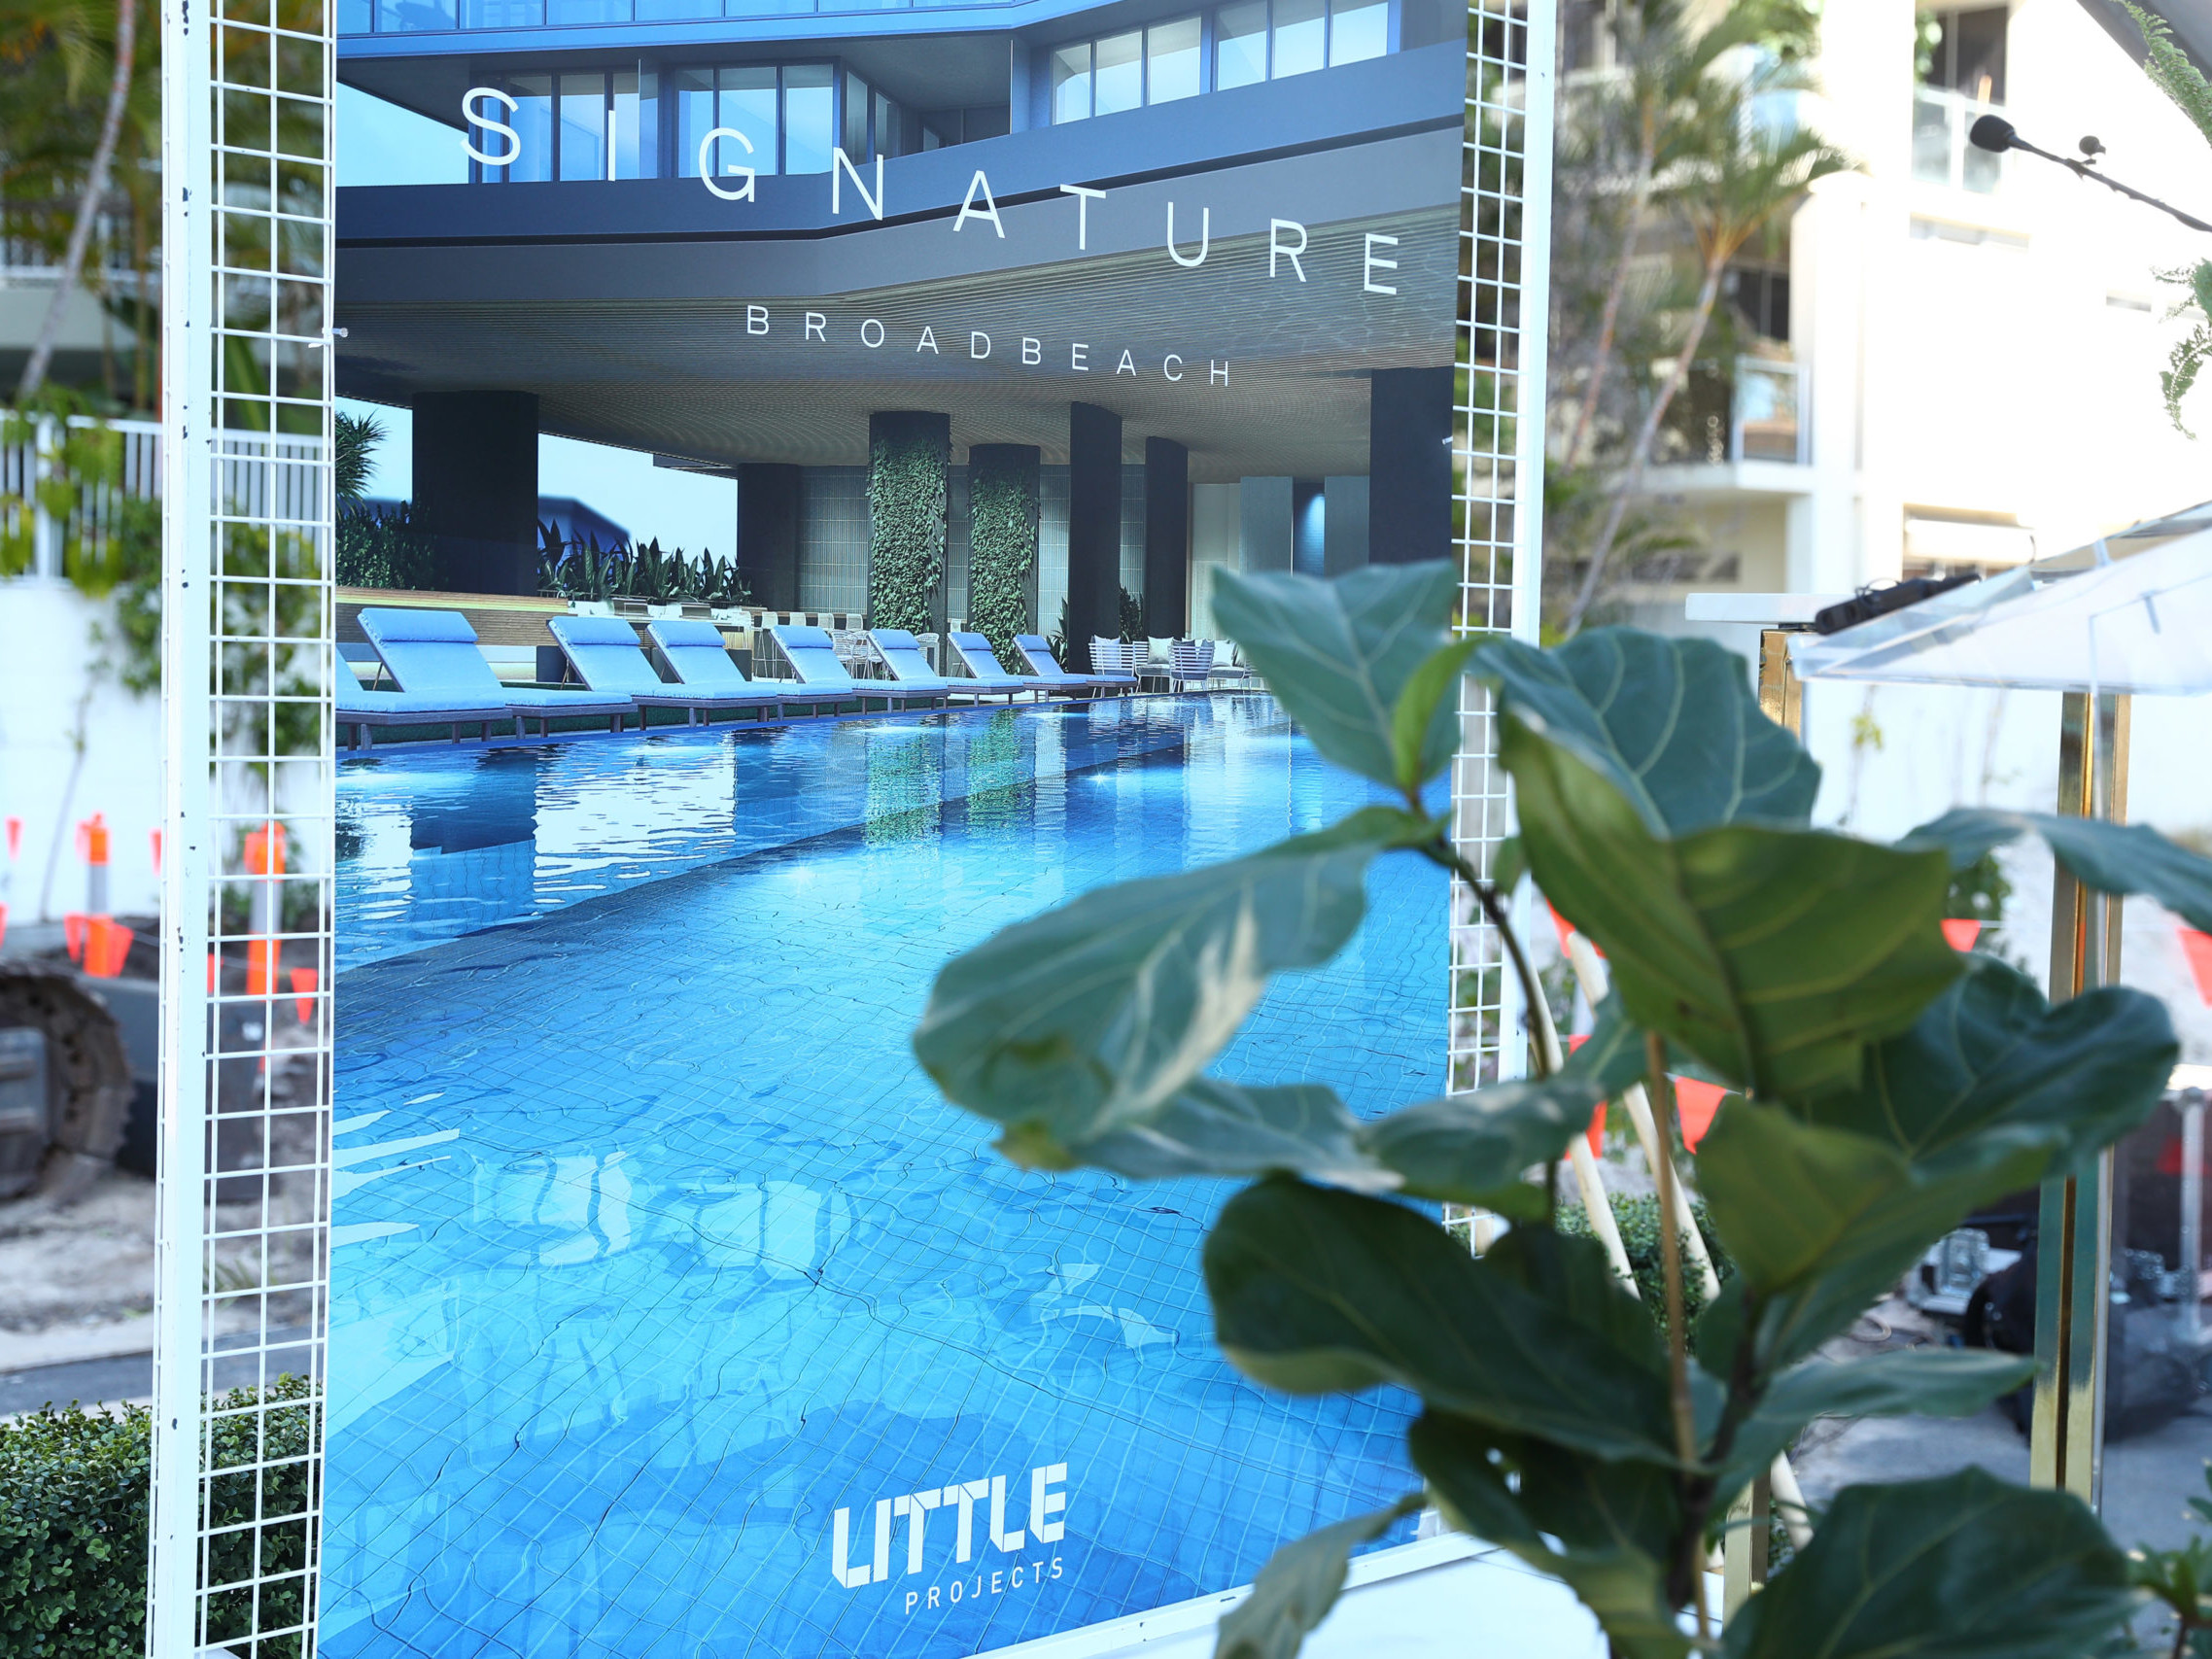 Little Projects Signature Broadbeach Ground-Breaking Activation, ENGAGE